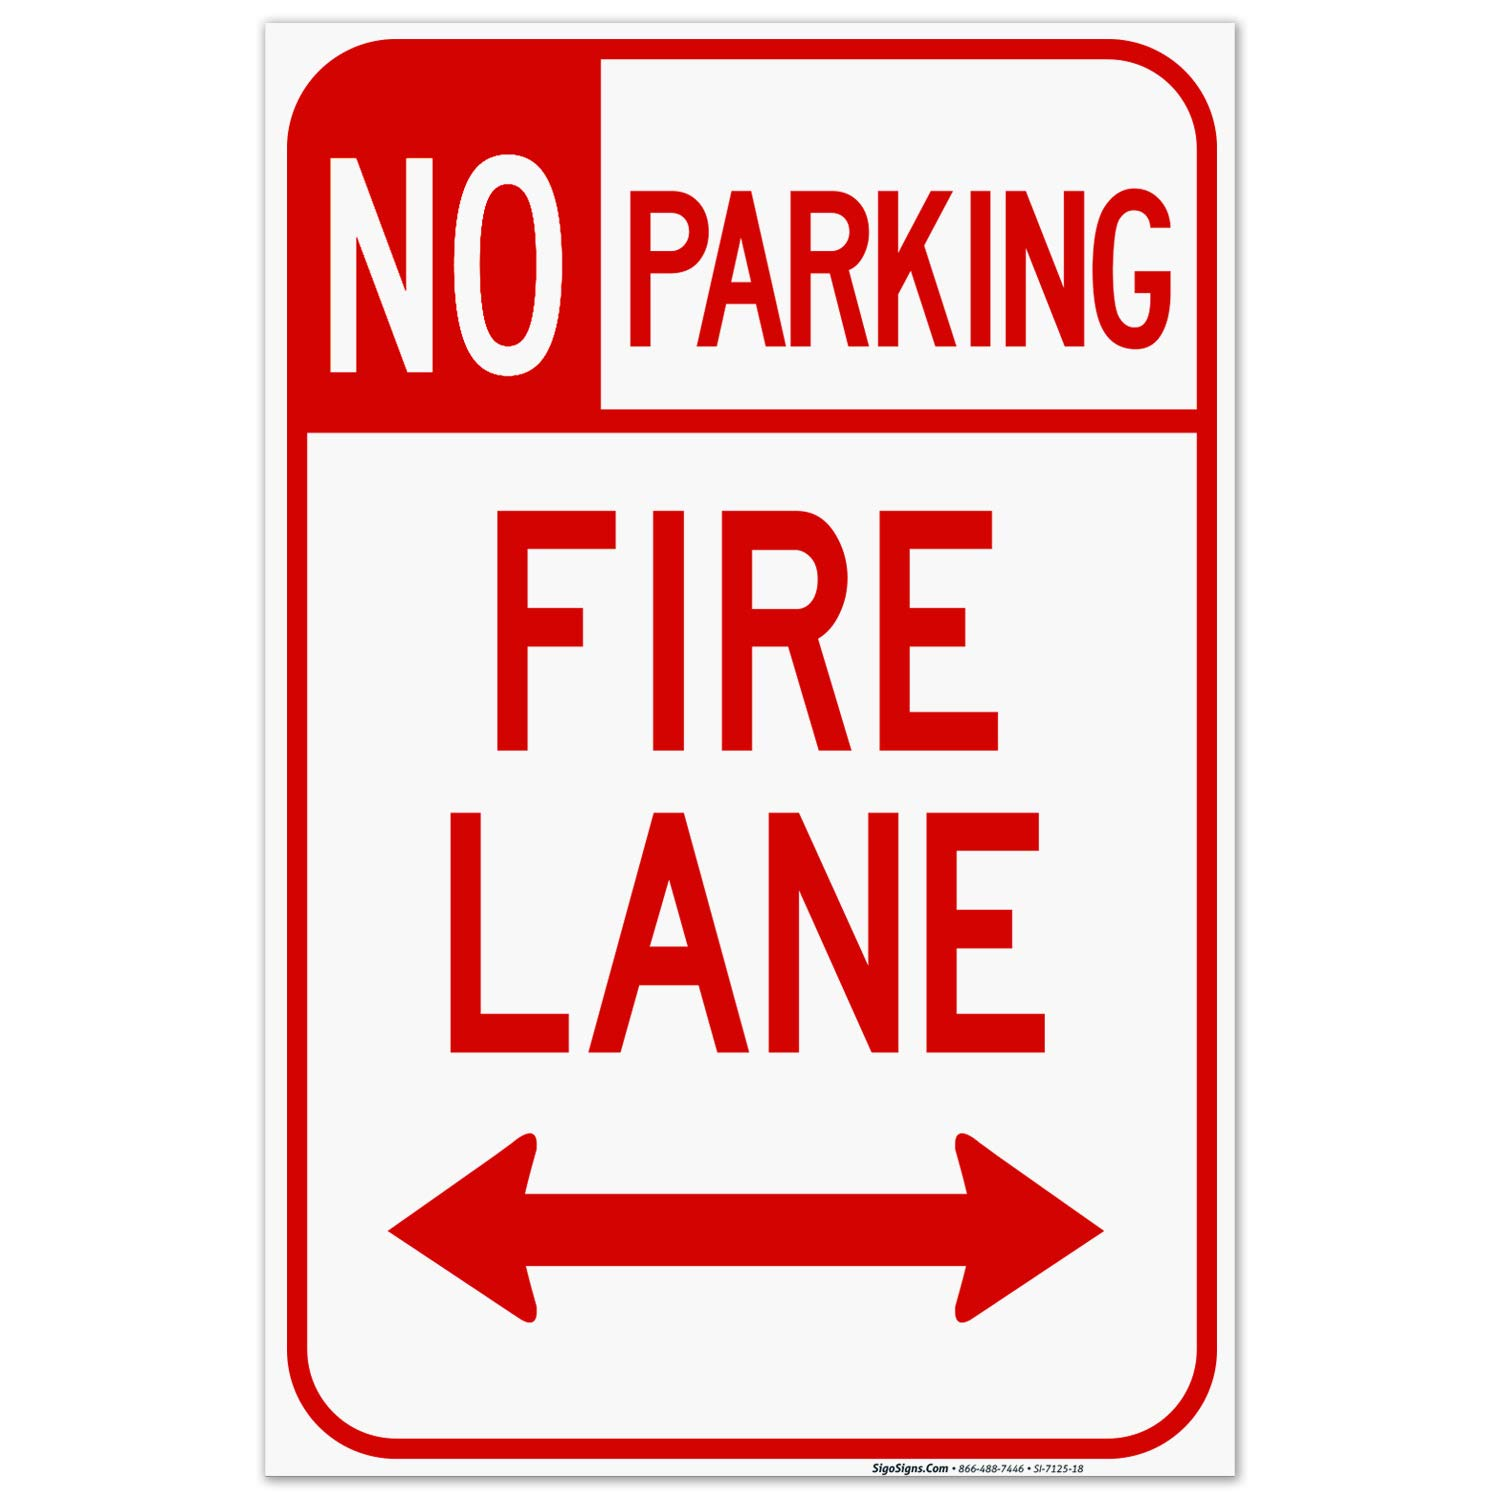 New arrival No Parking Bidrectional Fire Lane Sign 160 Th Mil Inches Long Beach Mall 24x36